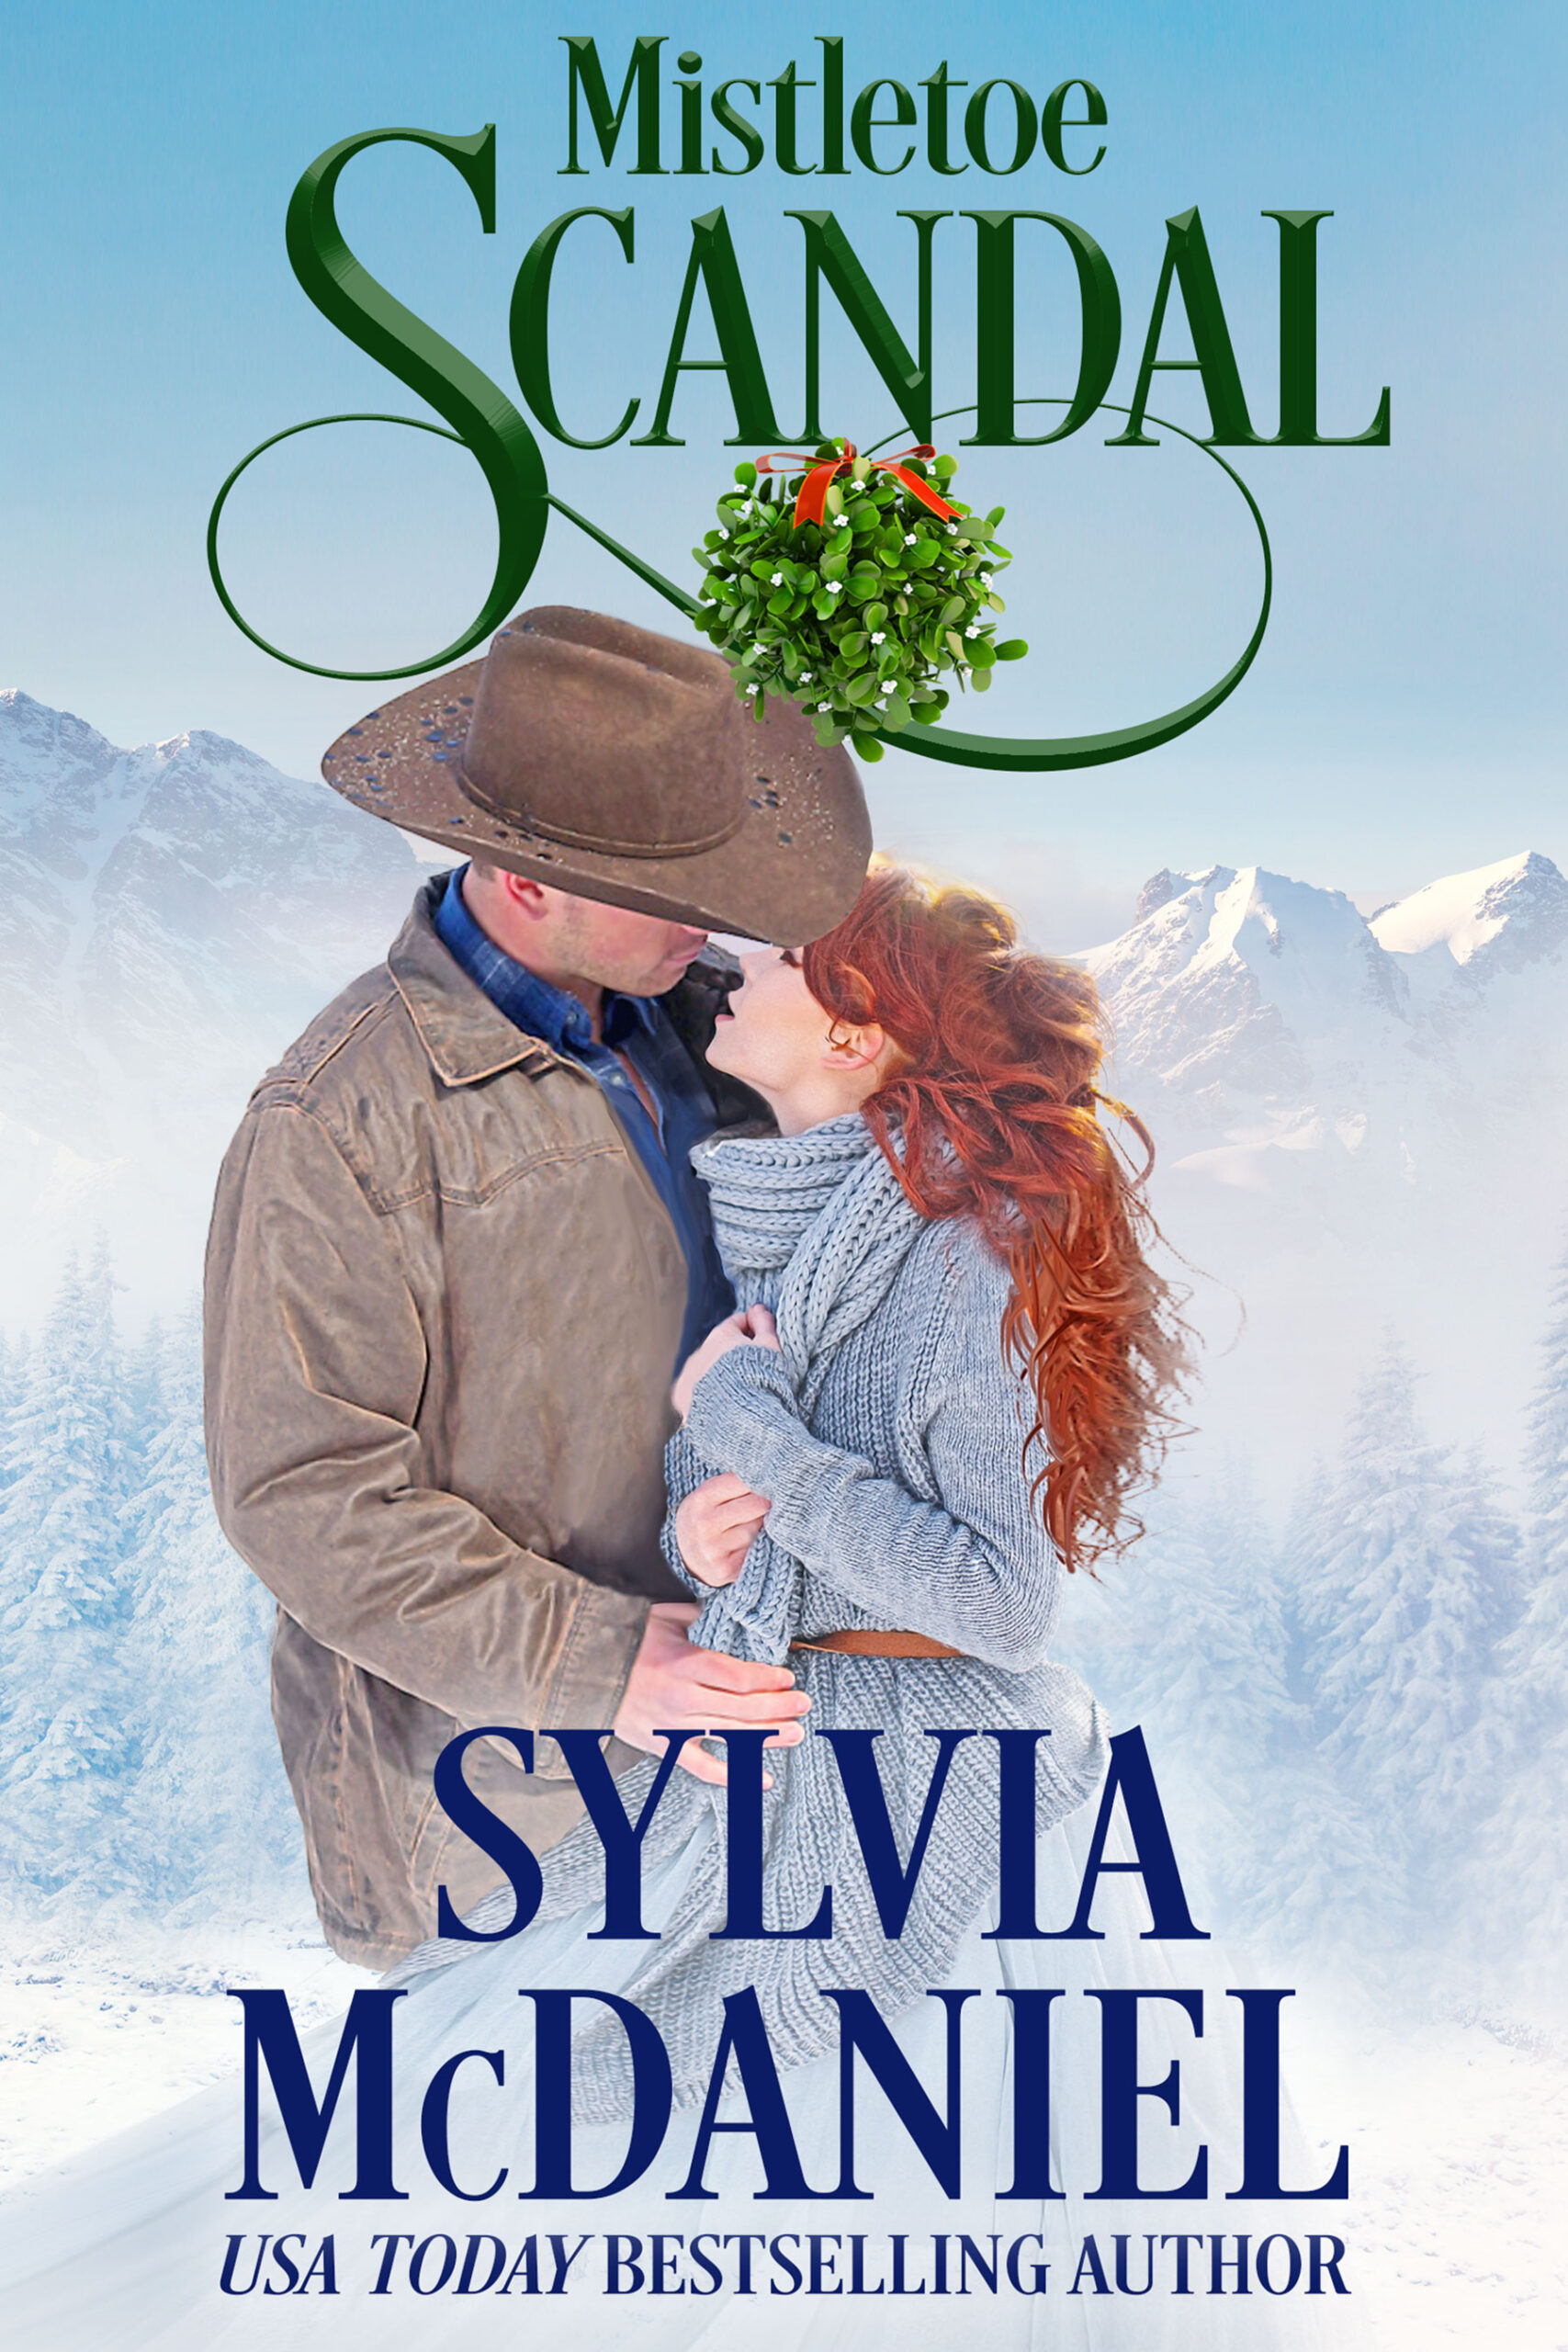 The cover of Mistletoe Scandal by Sylvia McDaniel. Red haired woman looking up at a handsome cowboy